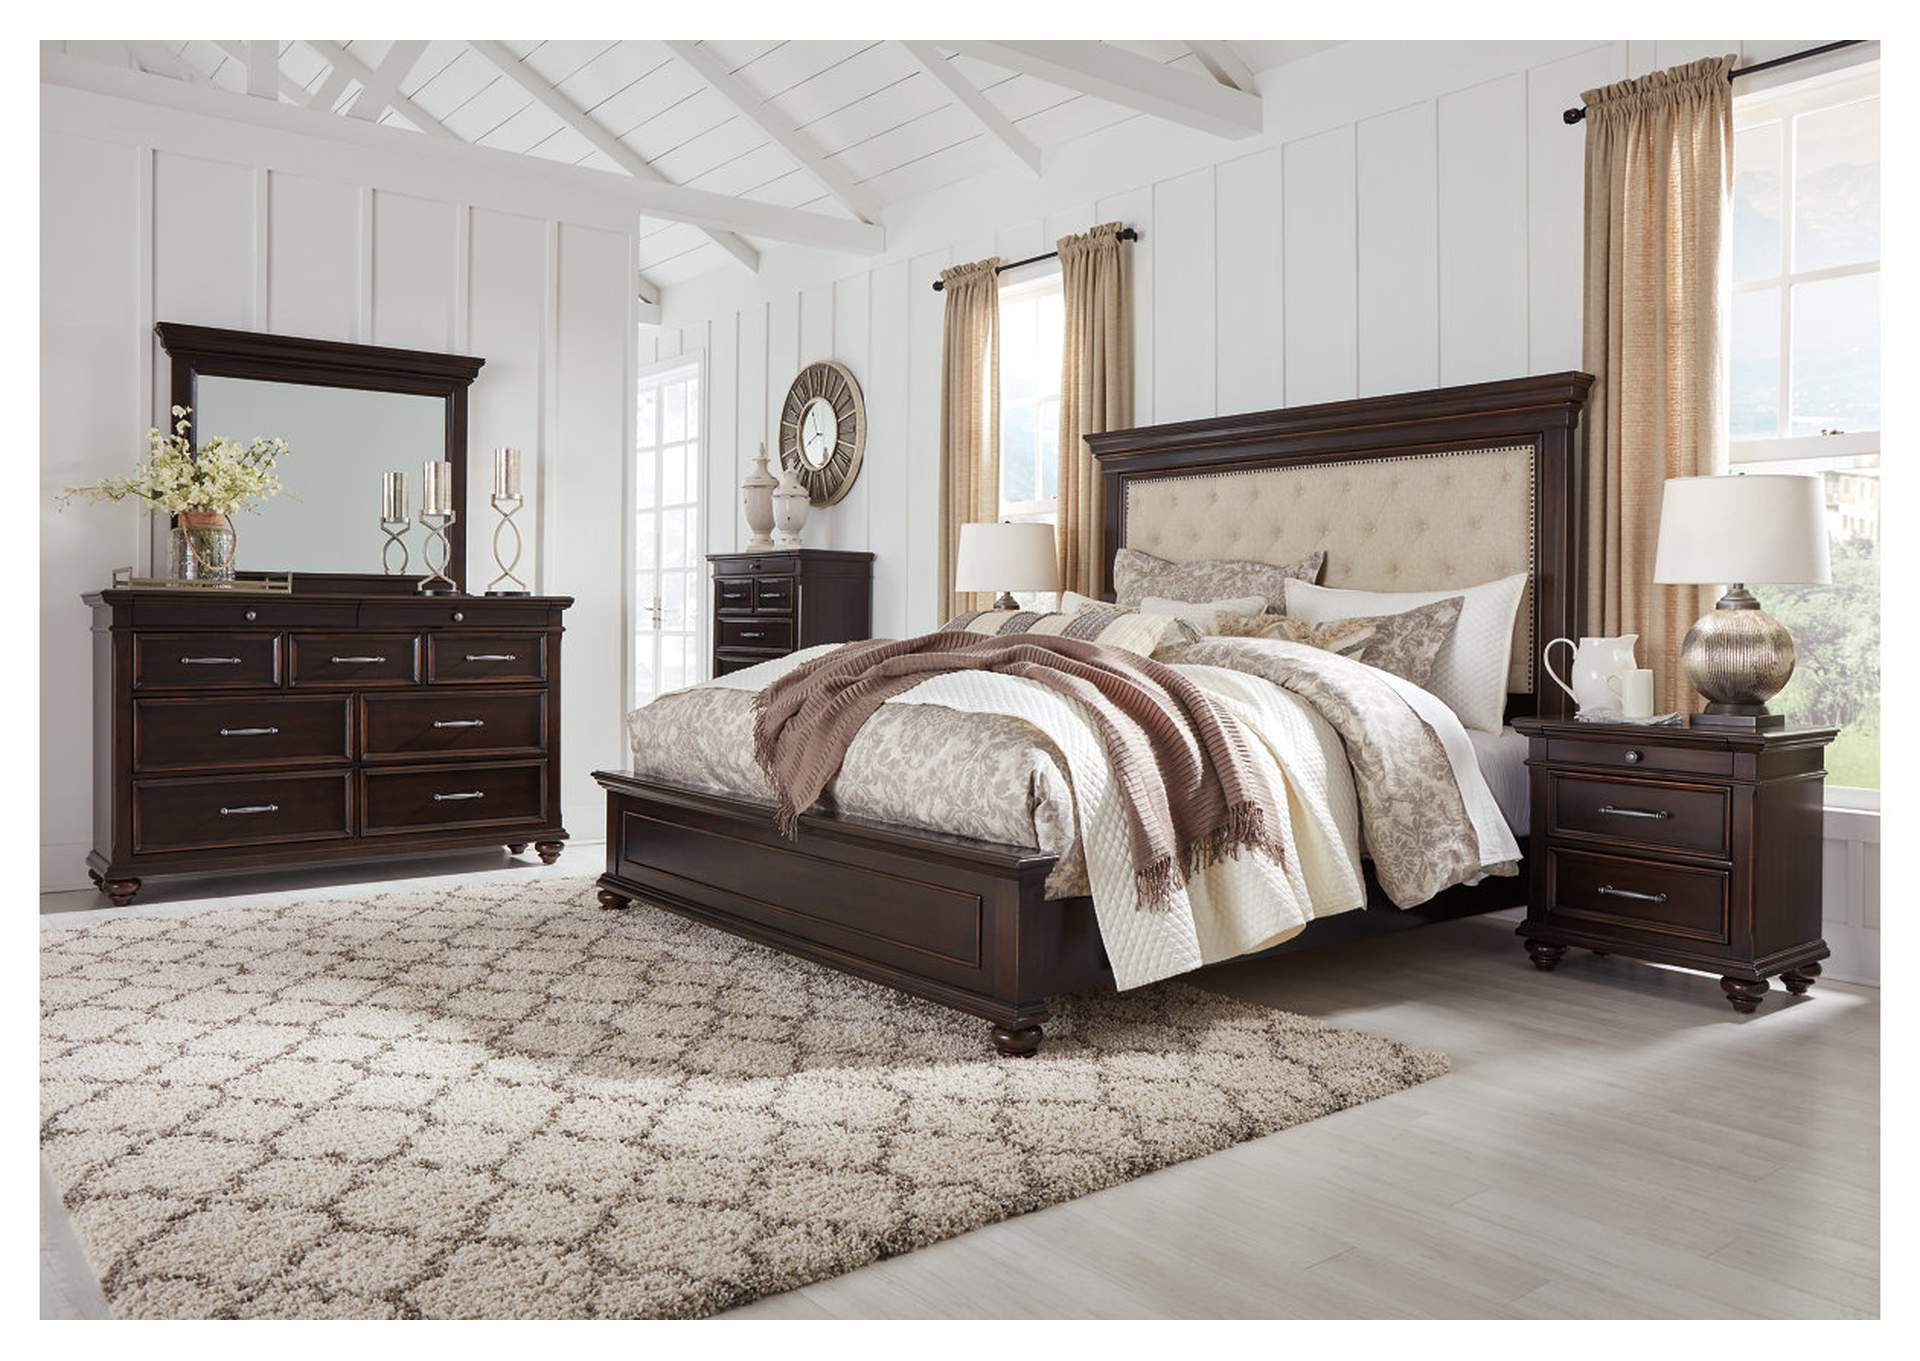 Brynhurst Brown King Upholstered Panel Bed Dresser w/Mirror,Signature Design By Ashley